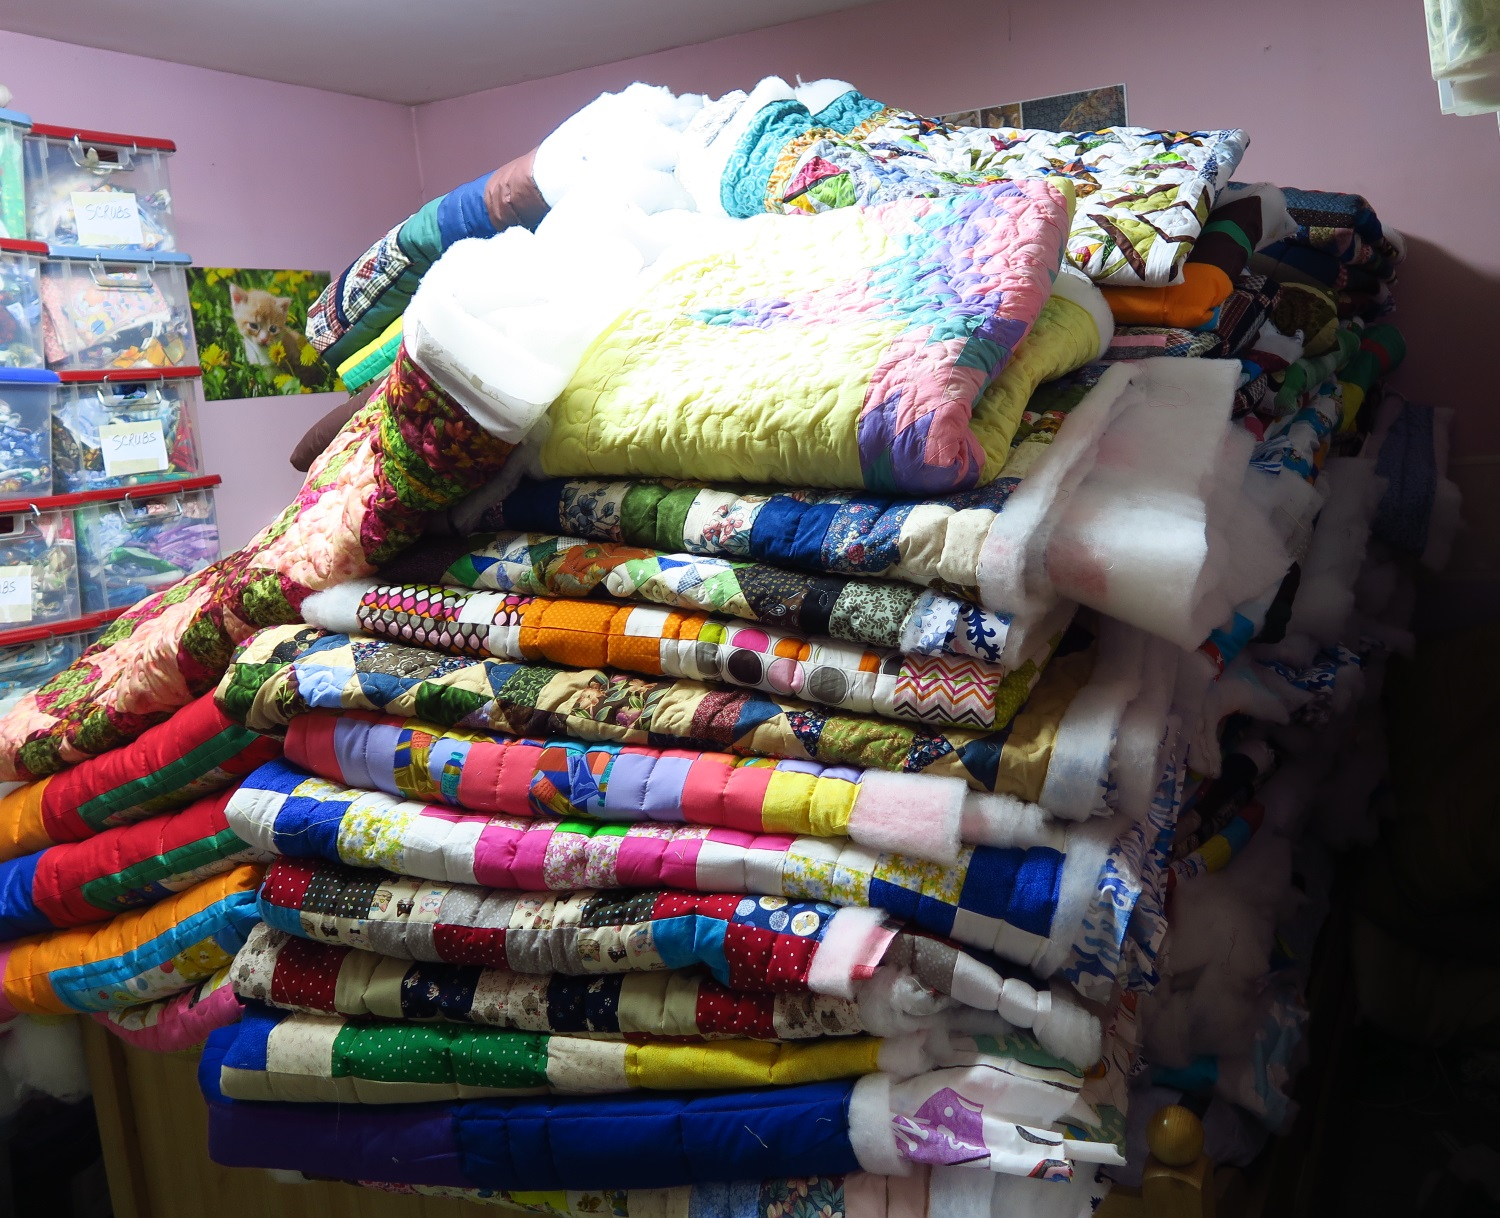 This is a picture of 120 charity quilts untrimmed and unbound.